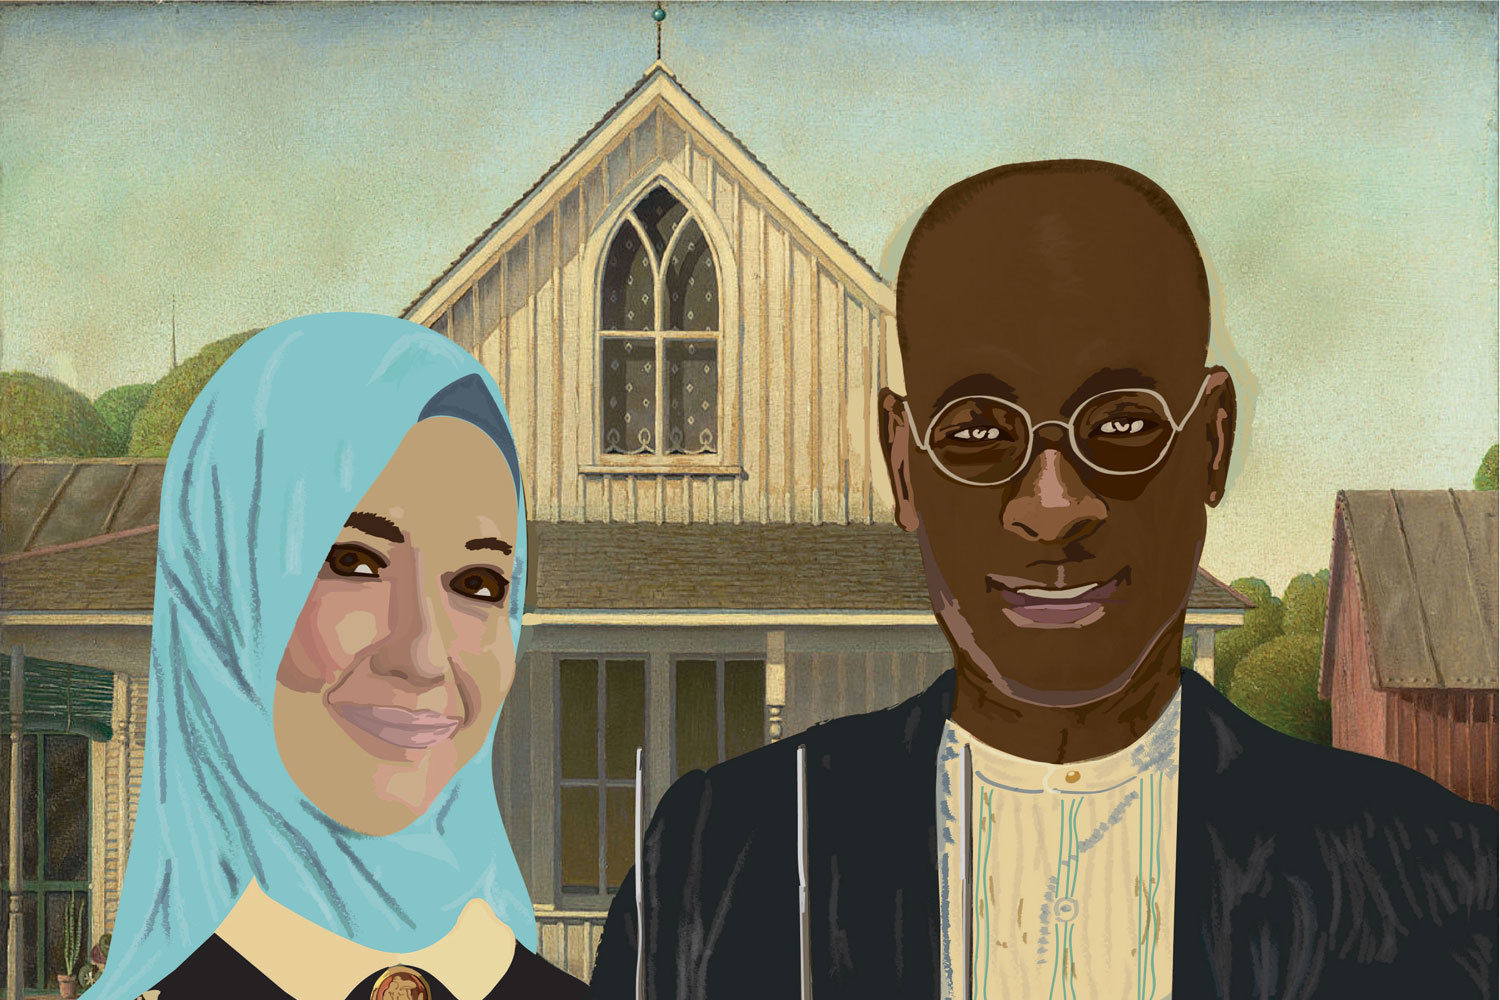 Embracing our differences 2018  new american gothic by logan lott valdosta georgia a7igwl